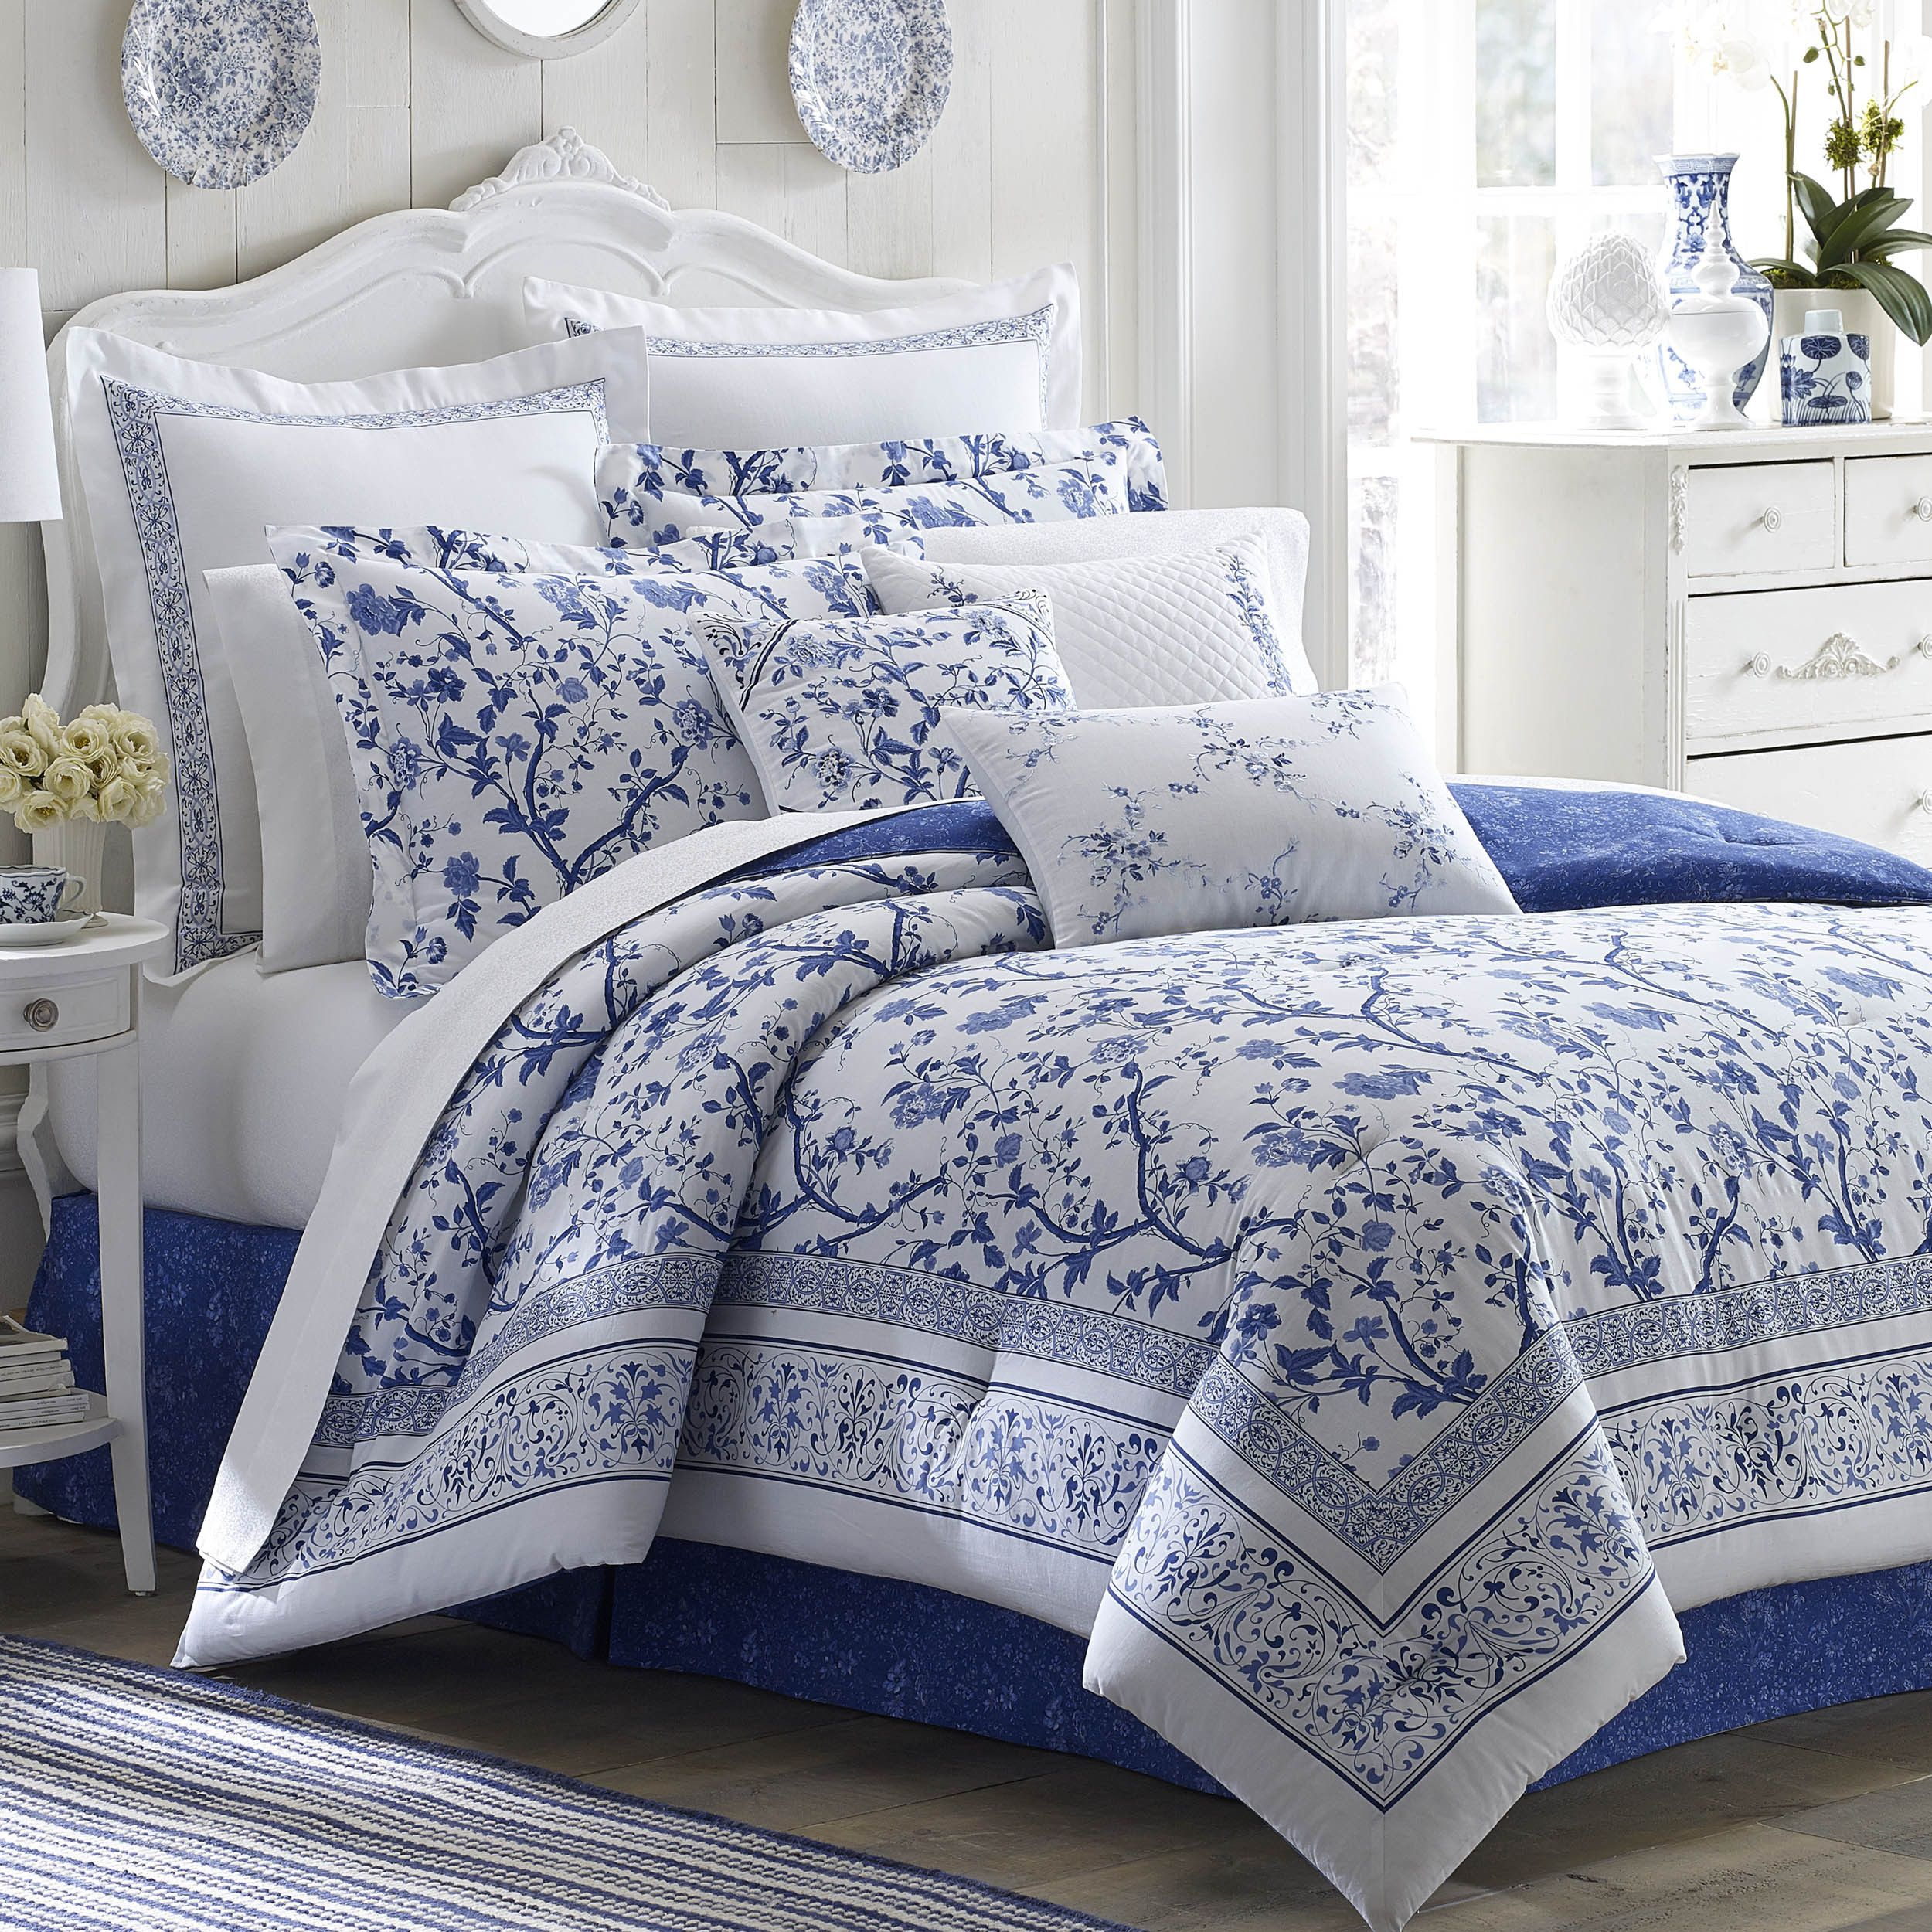 Best Laura Ashley Charlotte Blue And White Floral Cotton 4 400 x 300